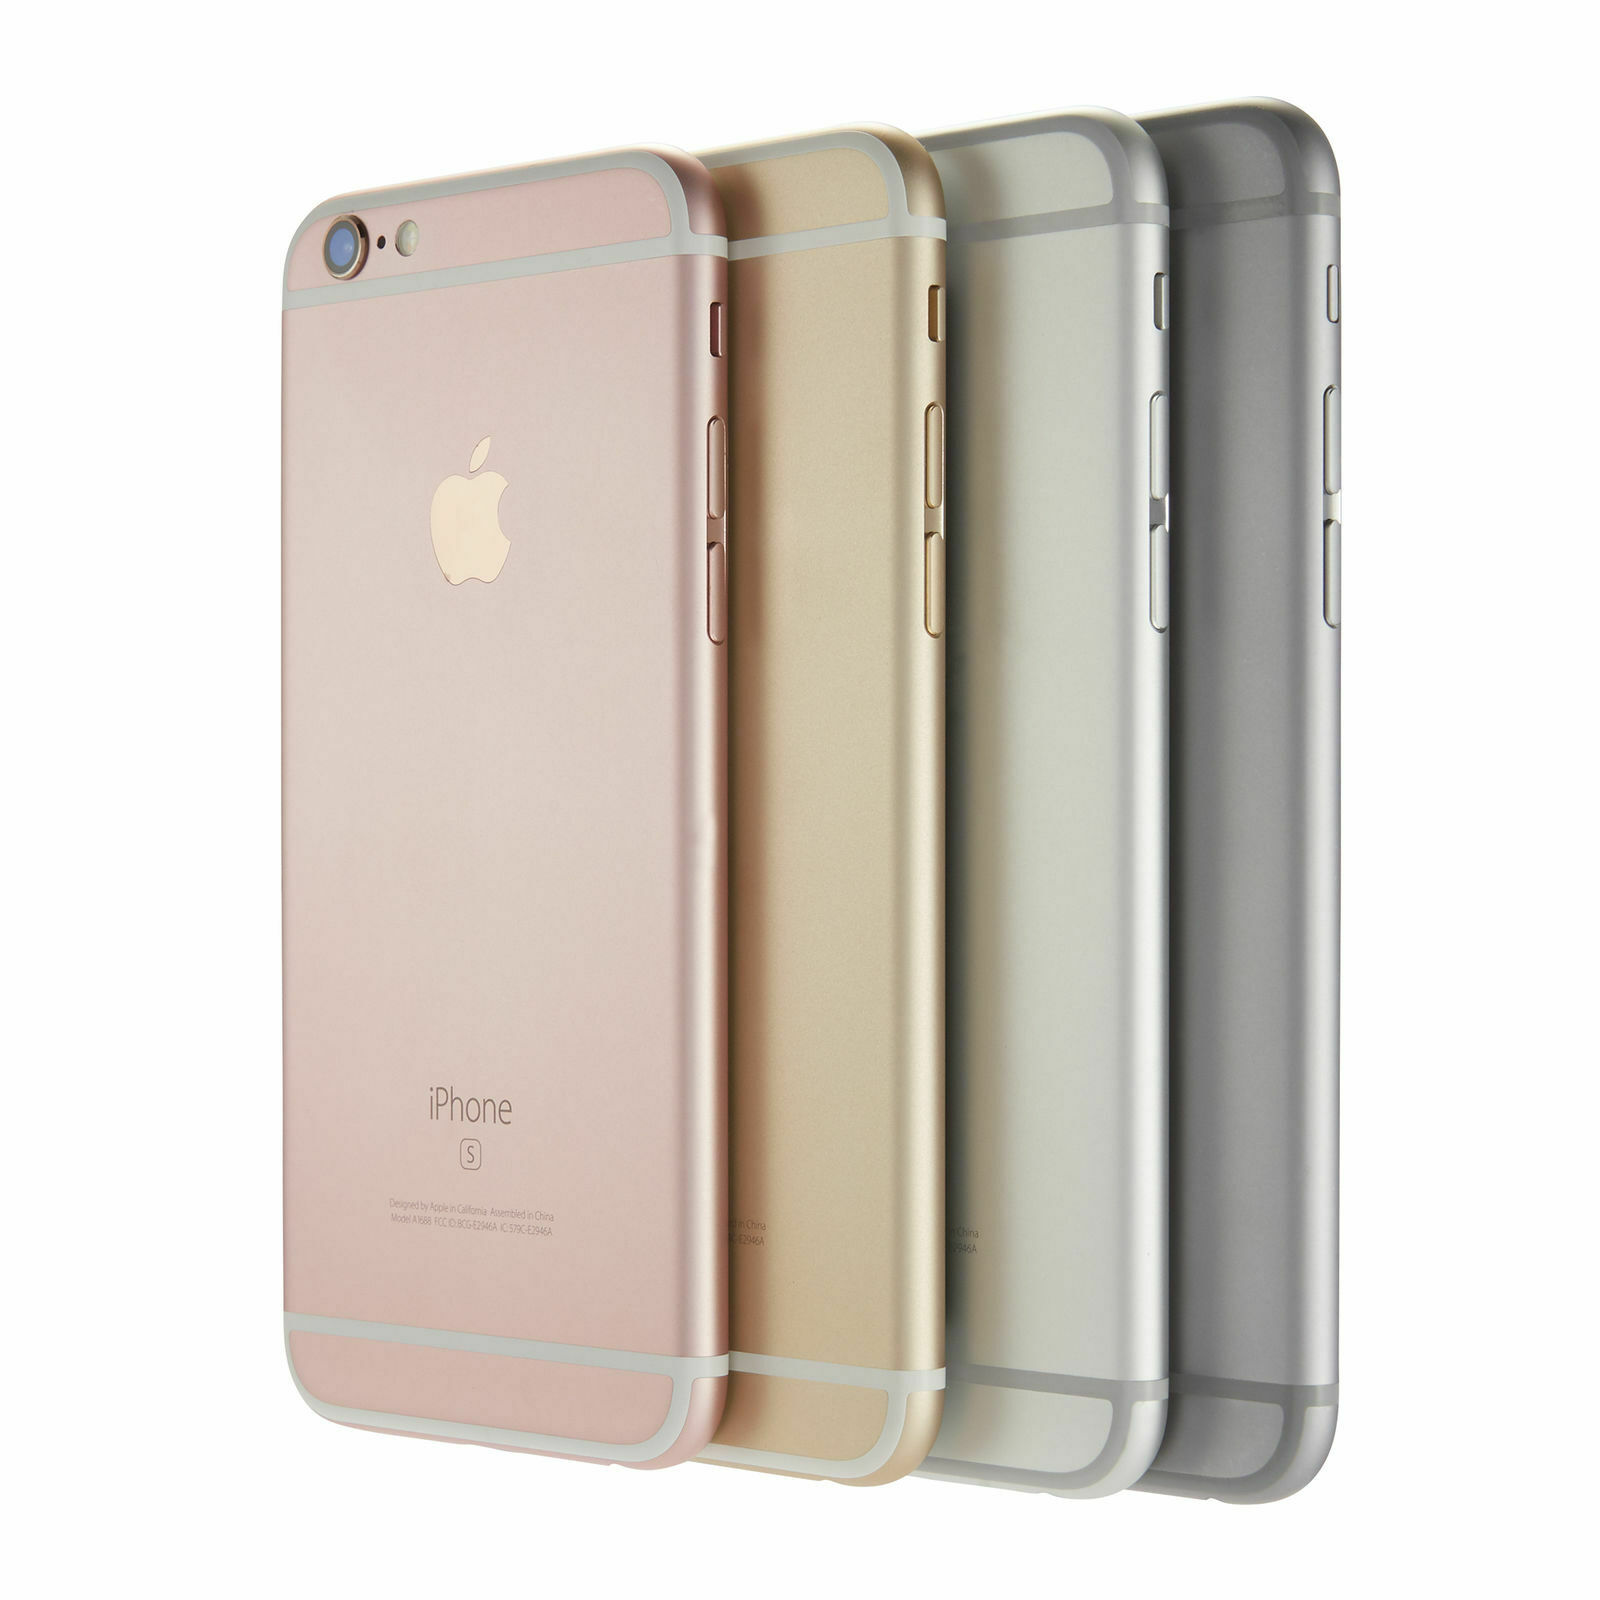 New Sealed Apple iPhone 6s Factory Unlocked CDMA GSM Unlocke